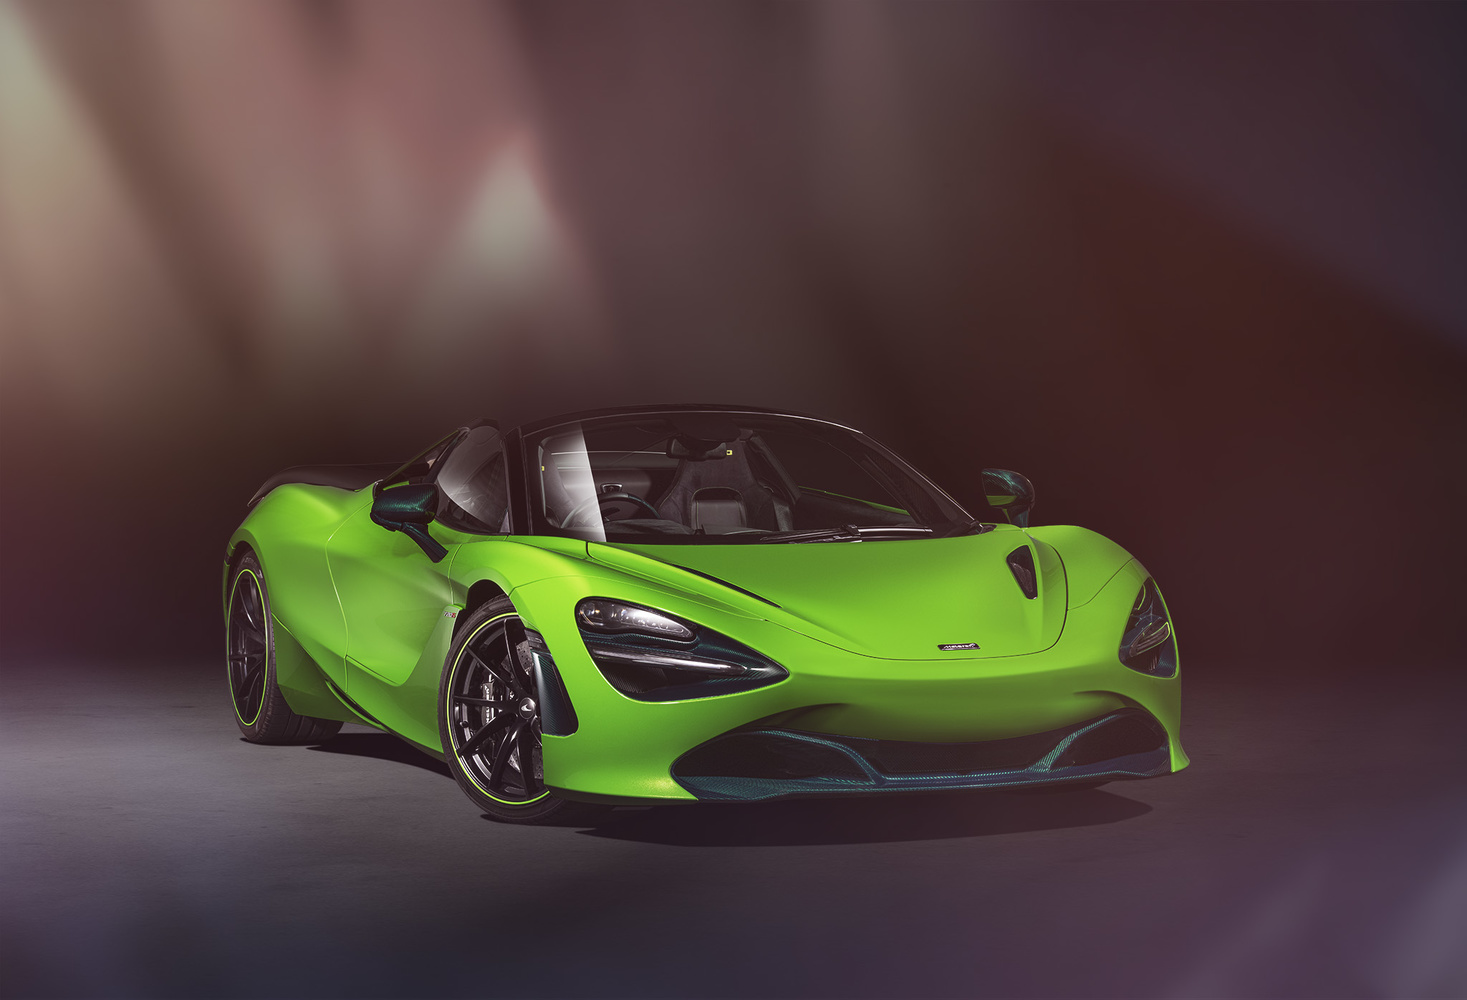 MSO 720S by Graham Taylor